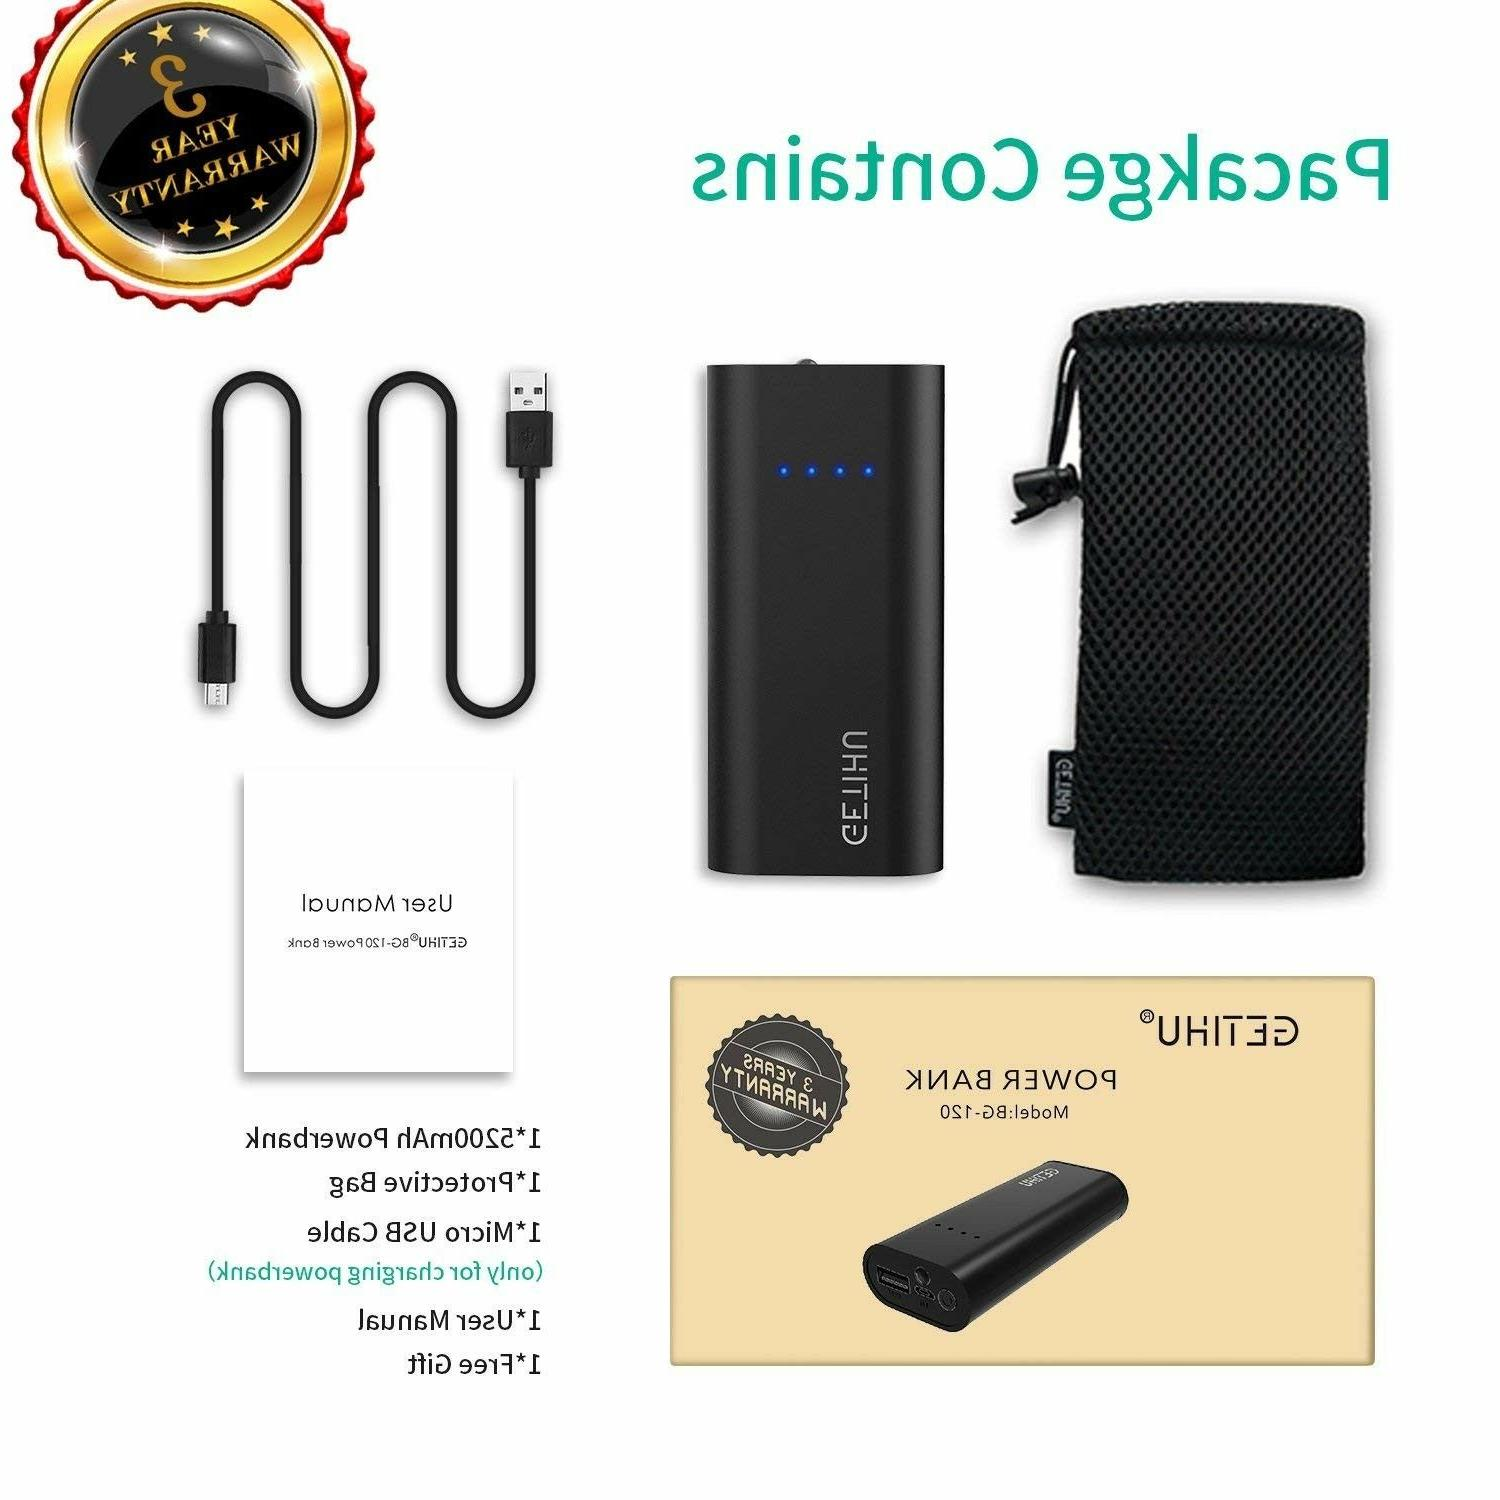 Ultra Power Bank 5200mAh portable charger 2.4A High-Speed Ch